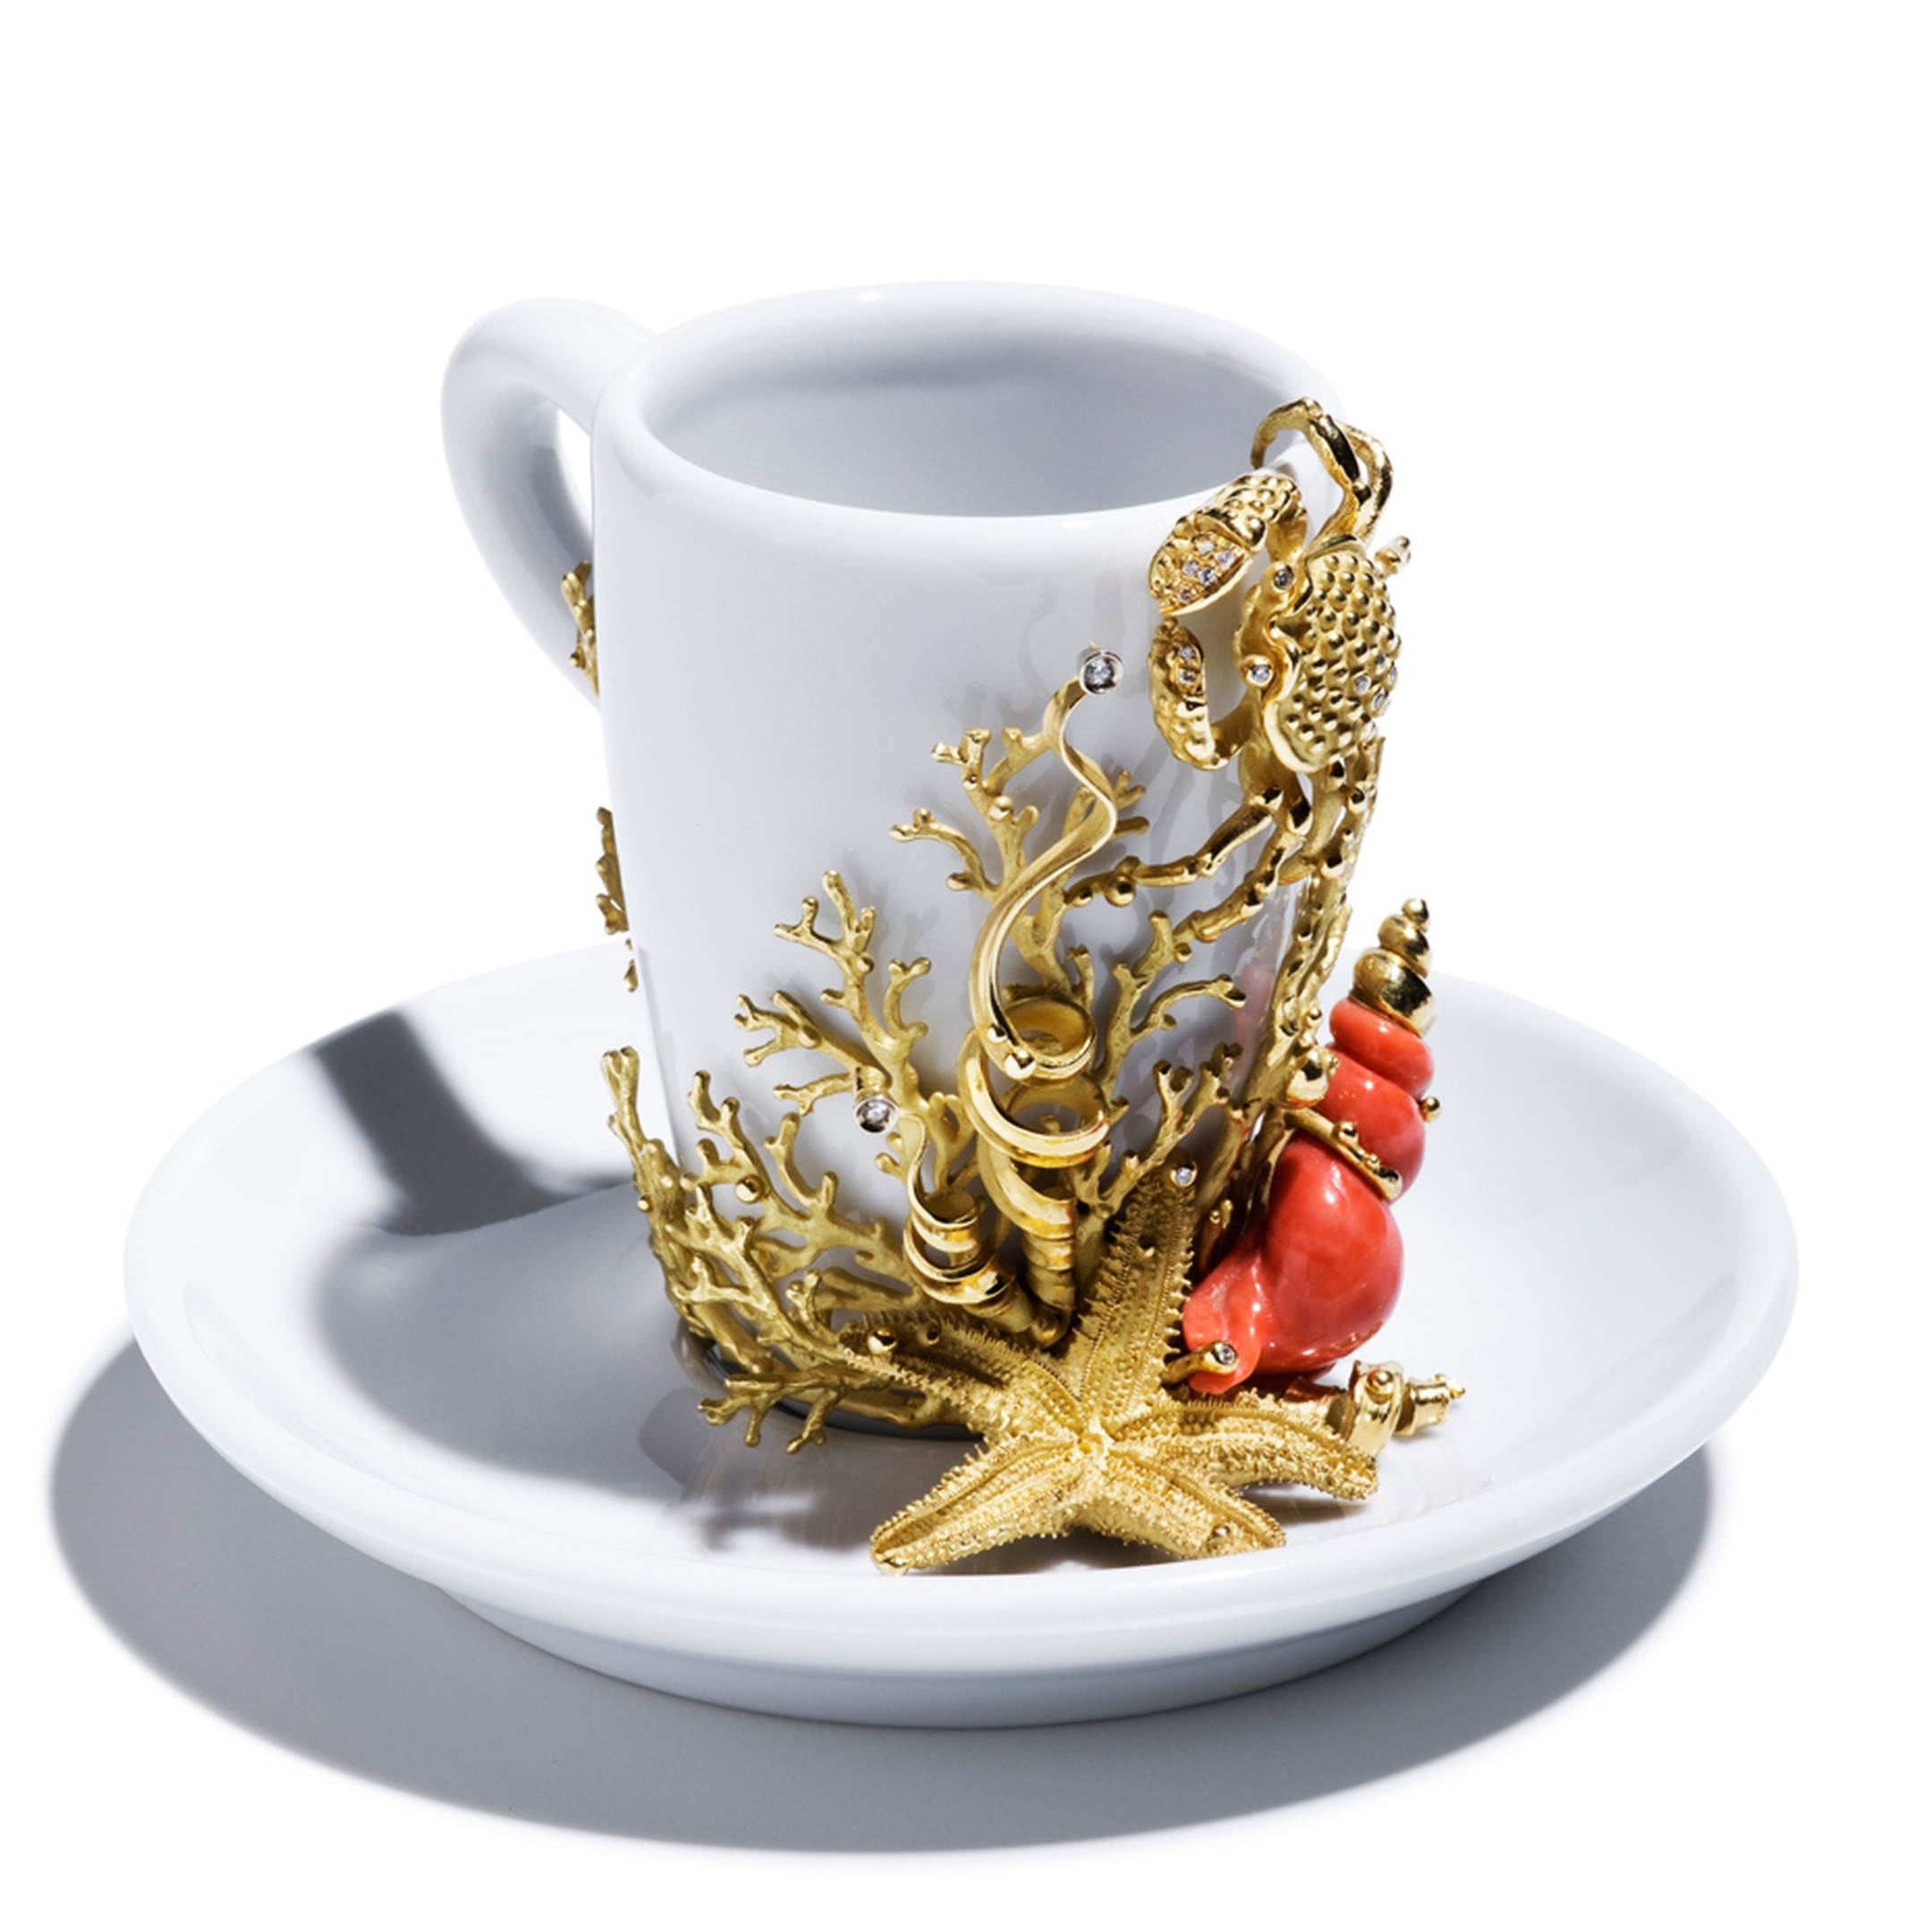 Massimo Izzo coffee cup featuring Mediterranean motifs in gold and coral, from the Jewels of the Sea collection.